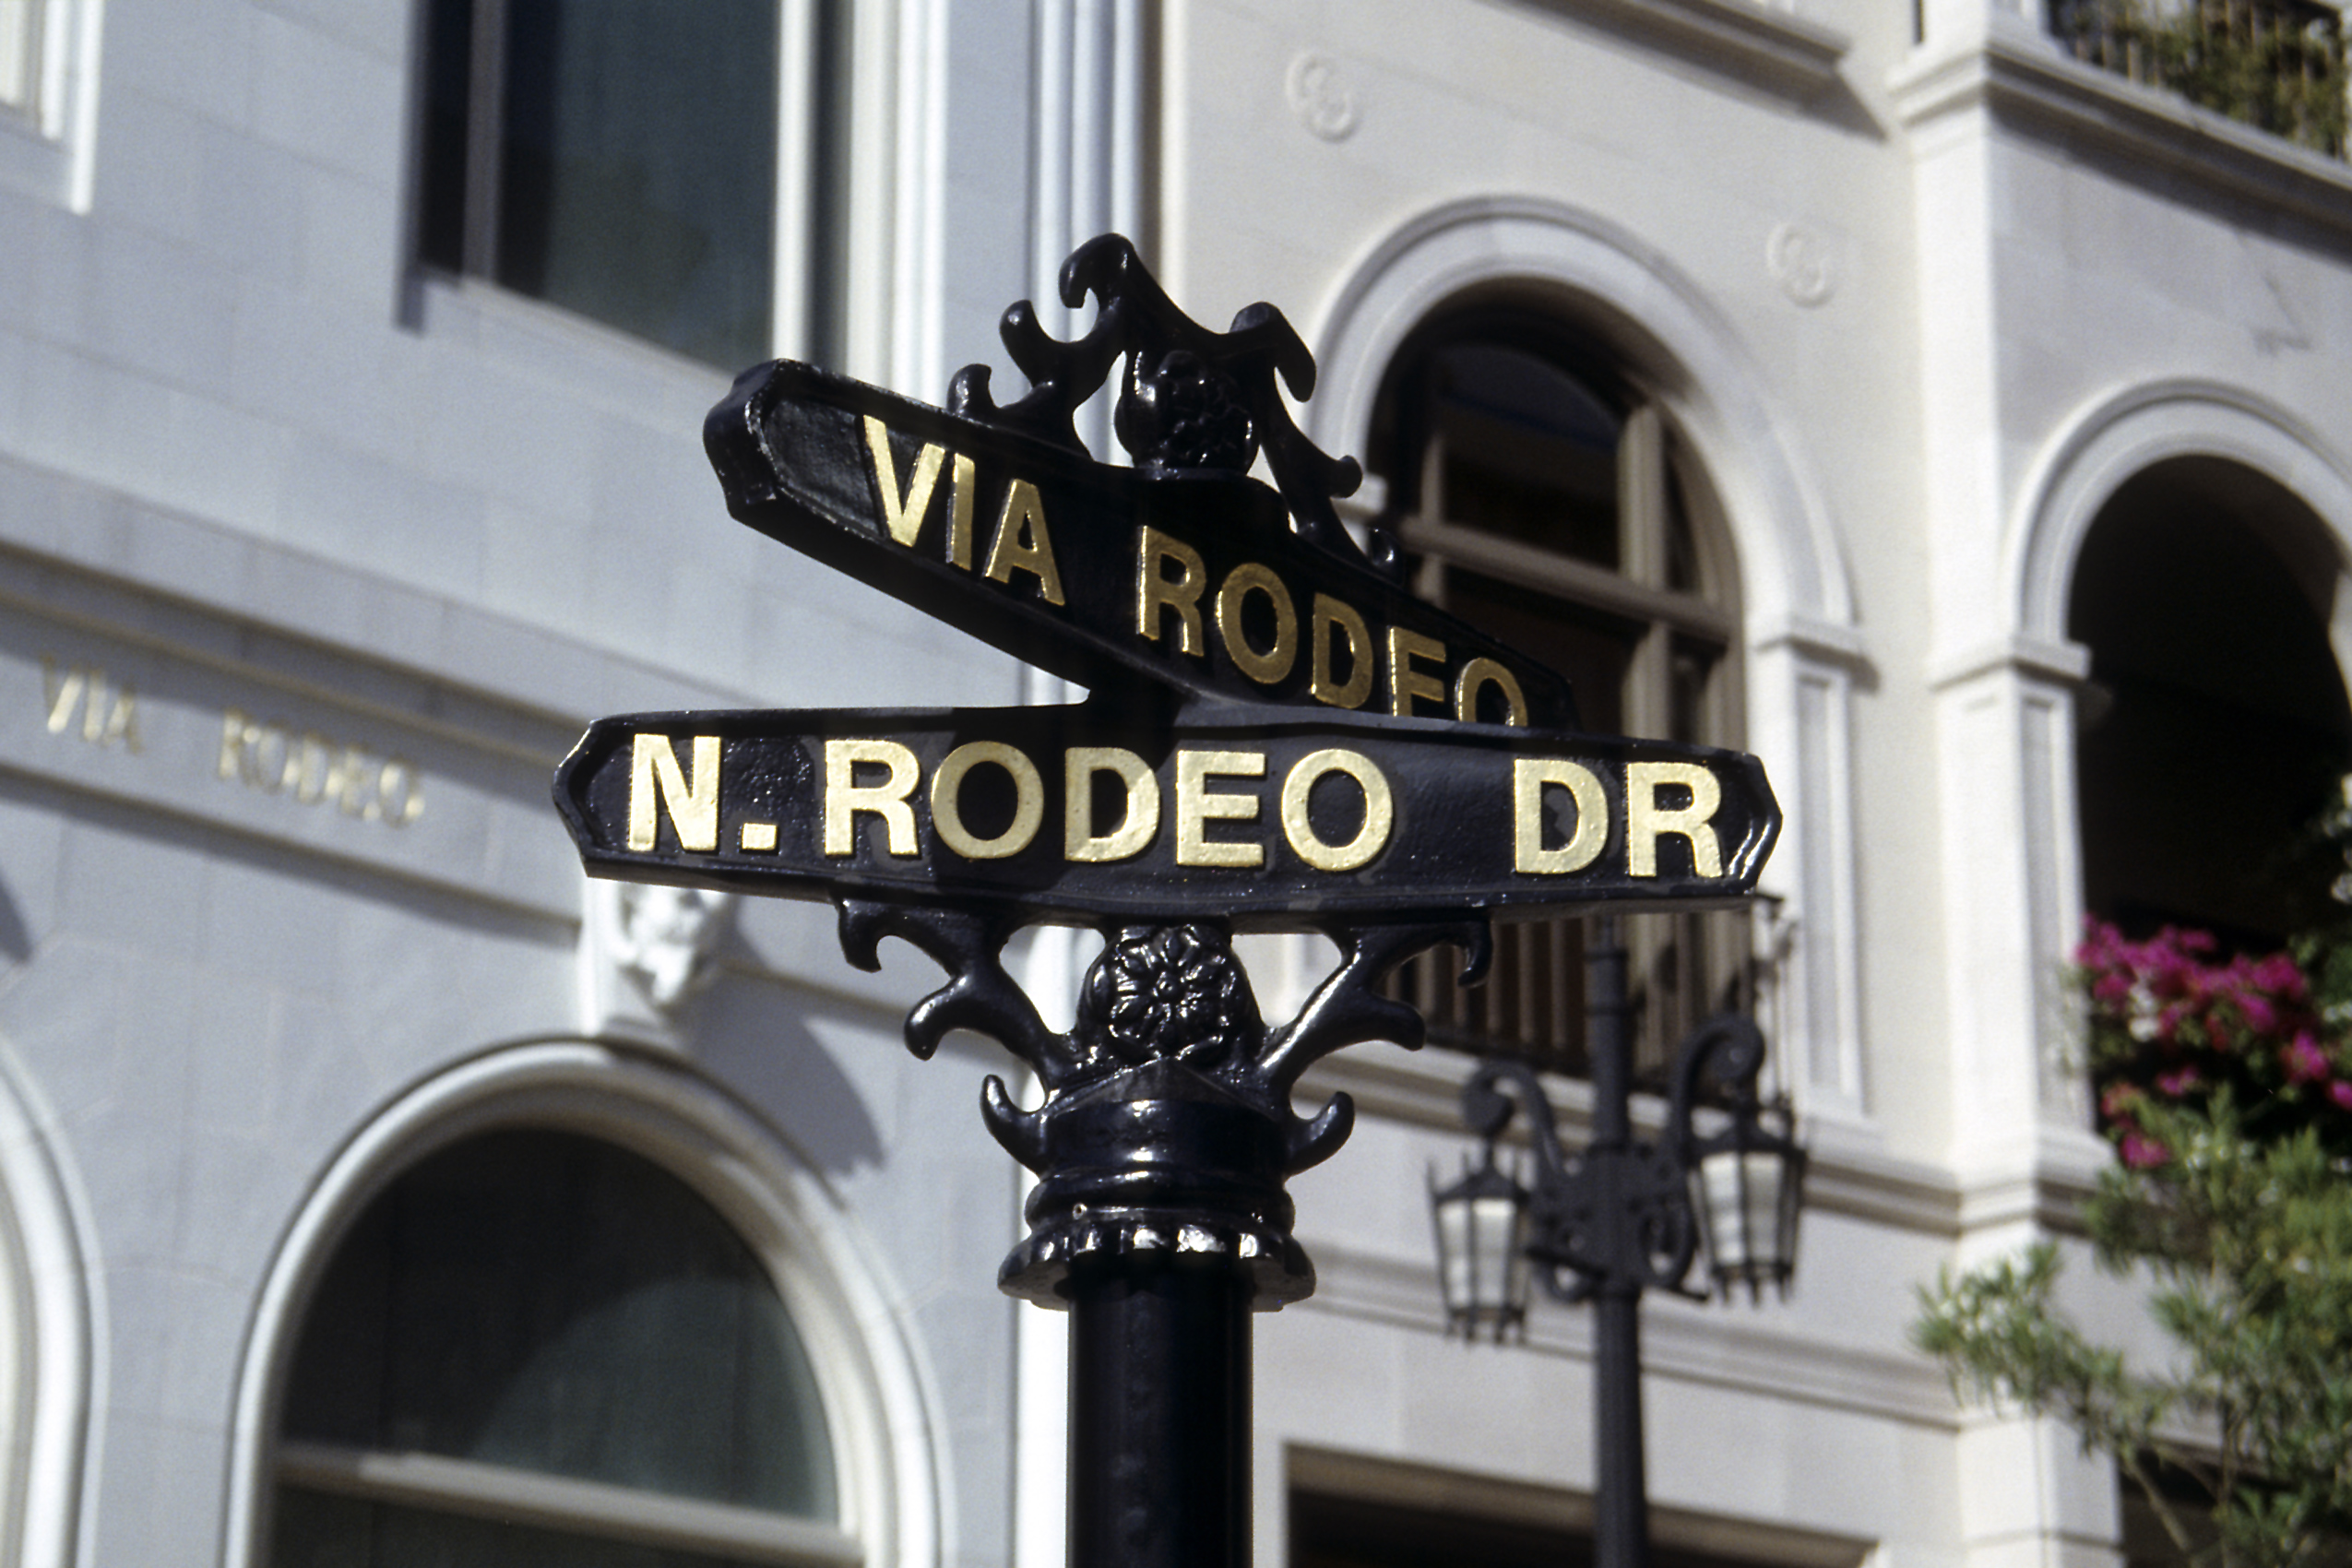 Rodeo Drive Luxury Shopping